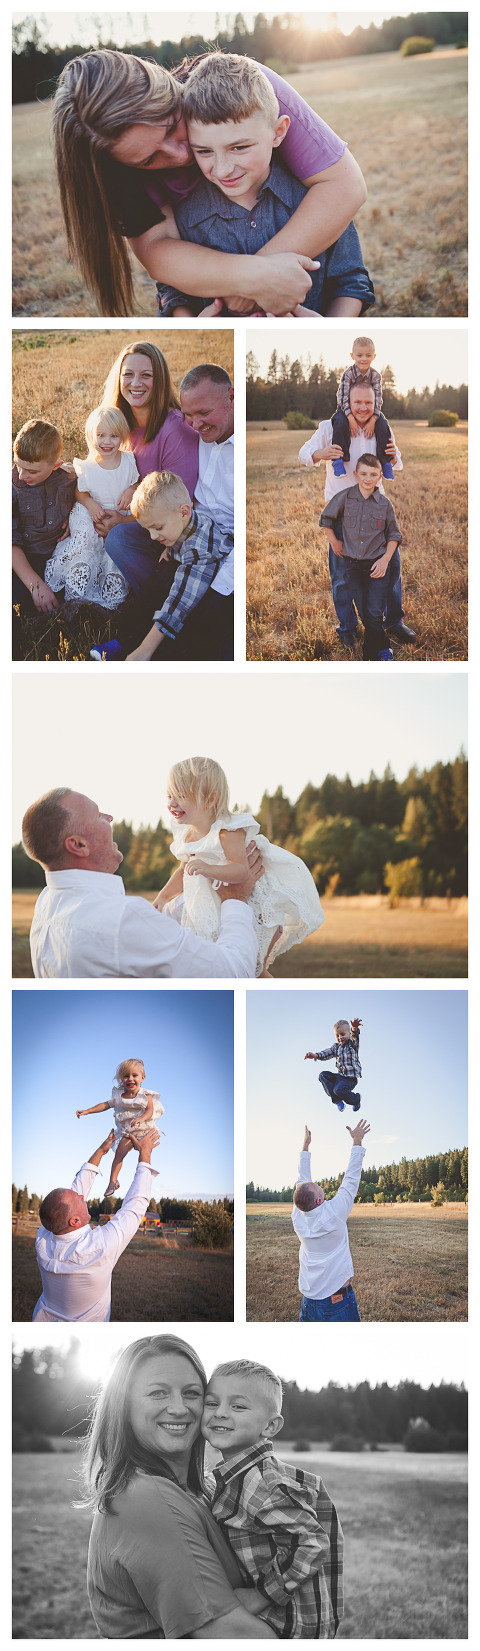 Girton Family, lifestyle photography by Hailey Haberman in Cle Elum, WA